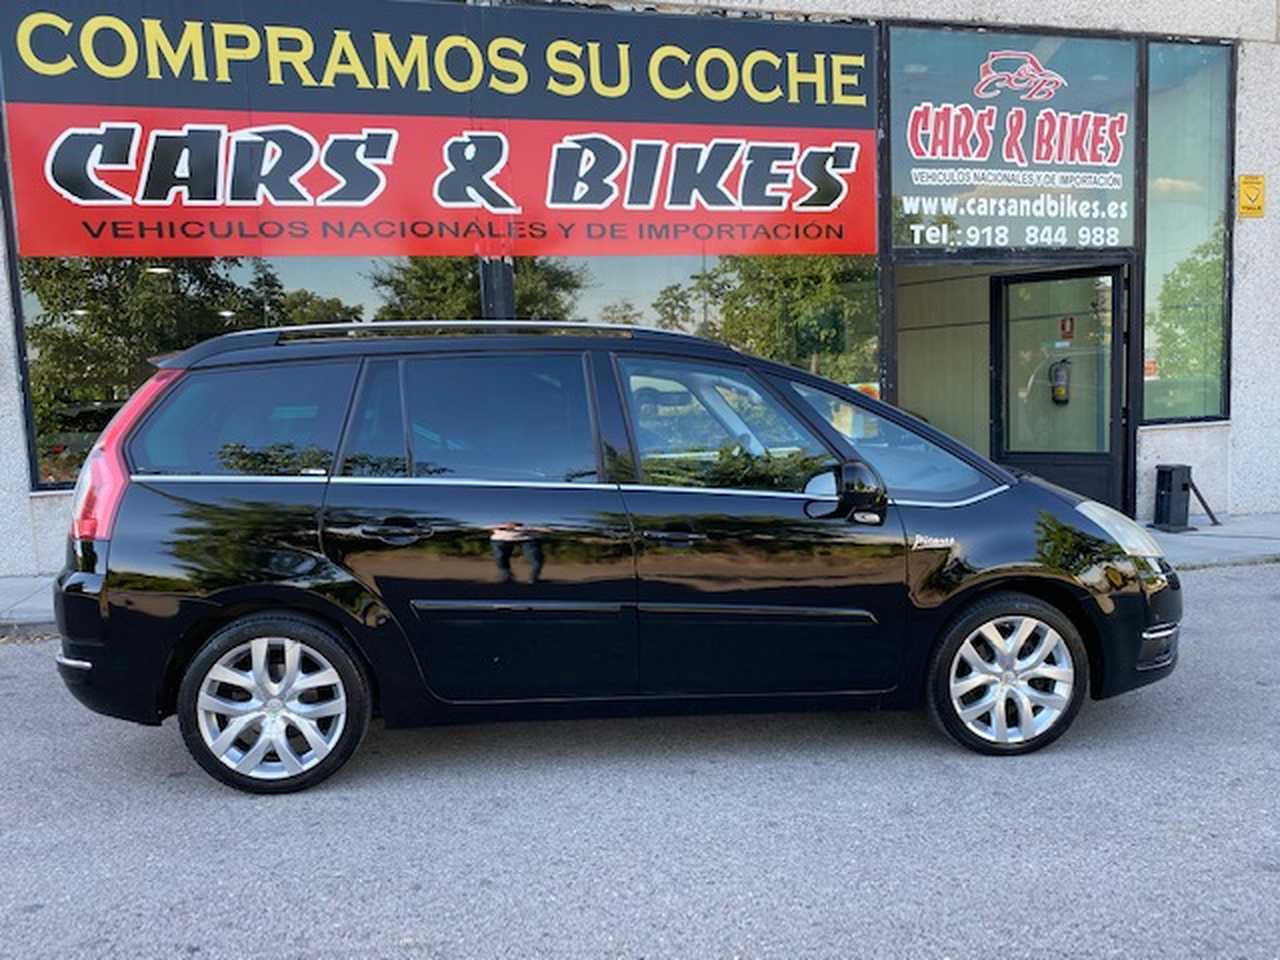 Citroën Grand C4 Picasso 2.0 HDi CMP Exclusive 5p.   - Foto 1